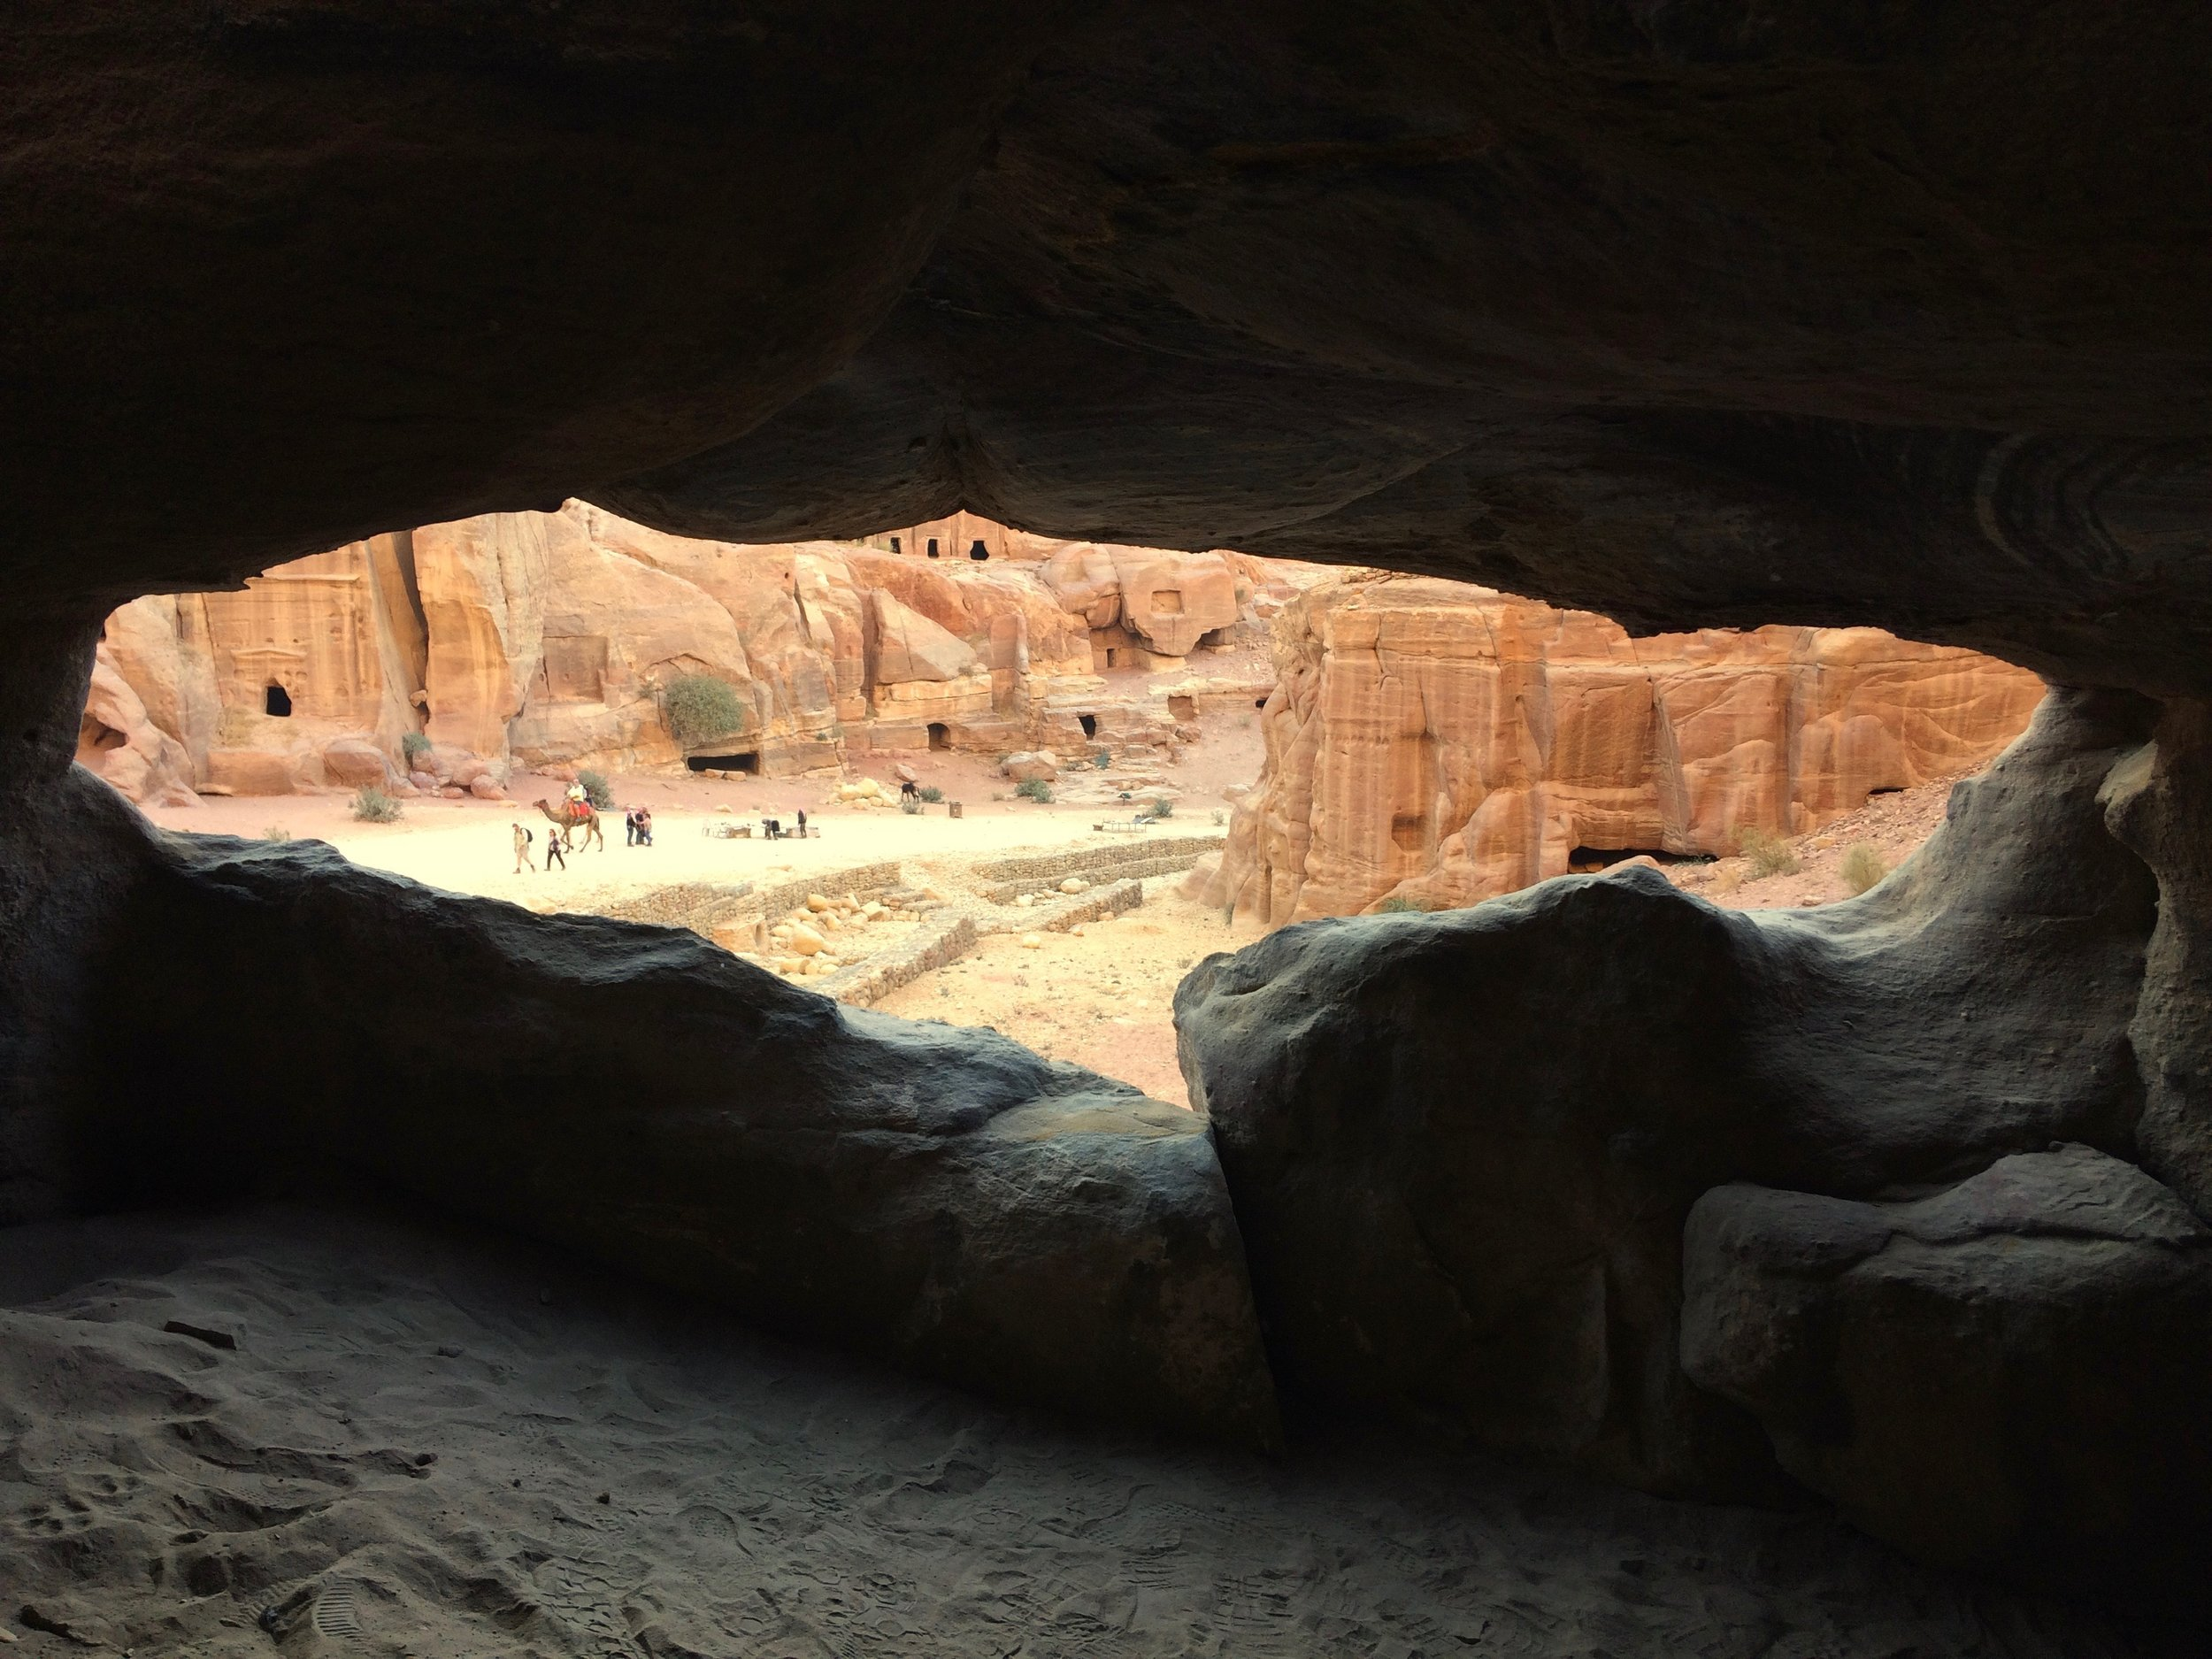 The ancient city of Petra was simply mind-blowing.